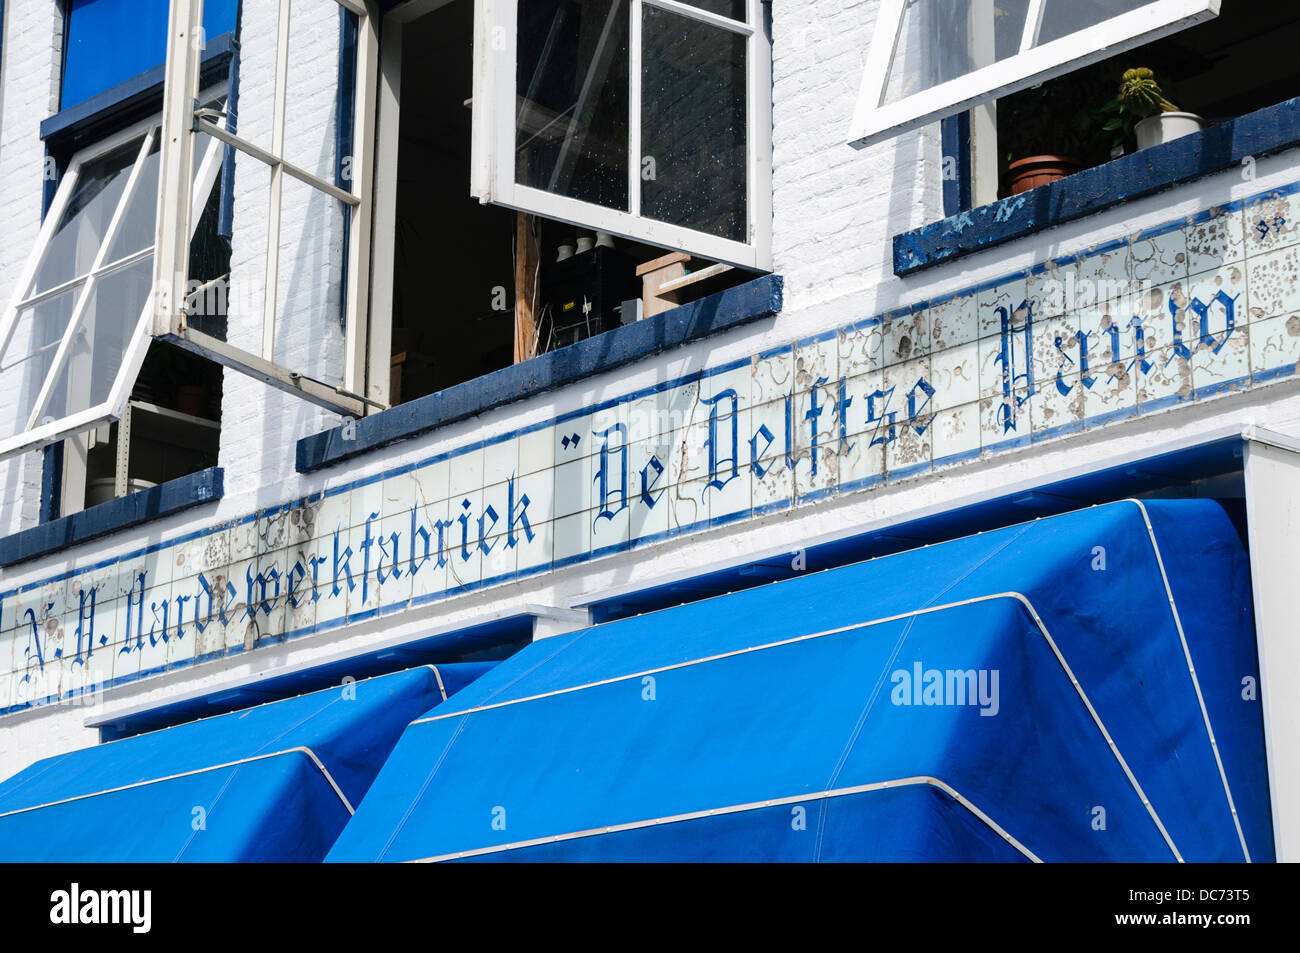 Delft, Netherlands. 5th August 2013 - Sign above the entrance to the Delft Pottery - Stock Image